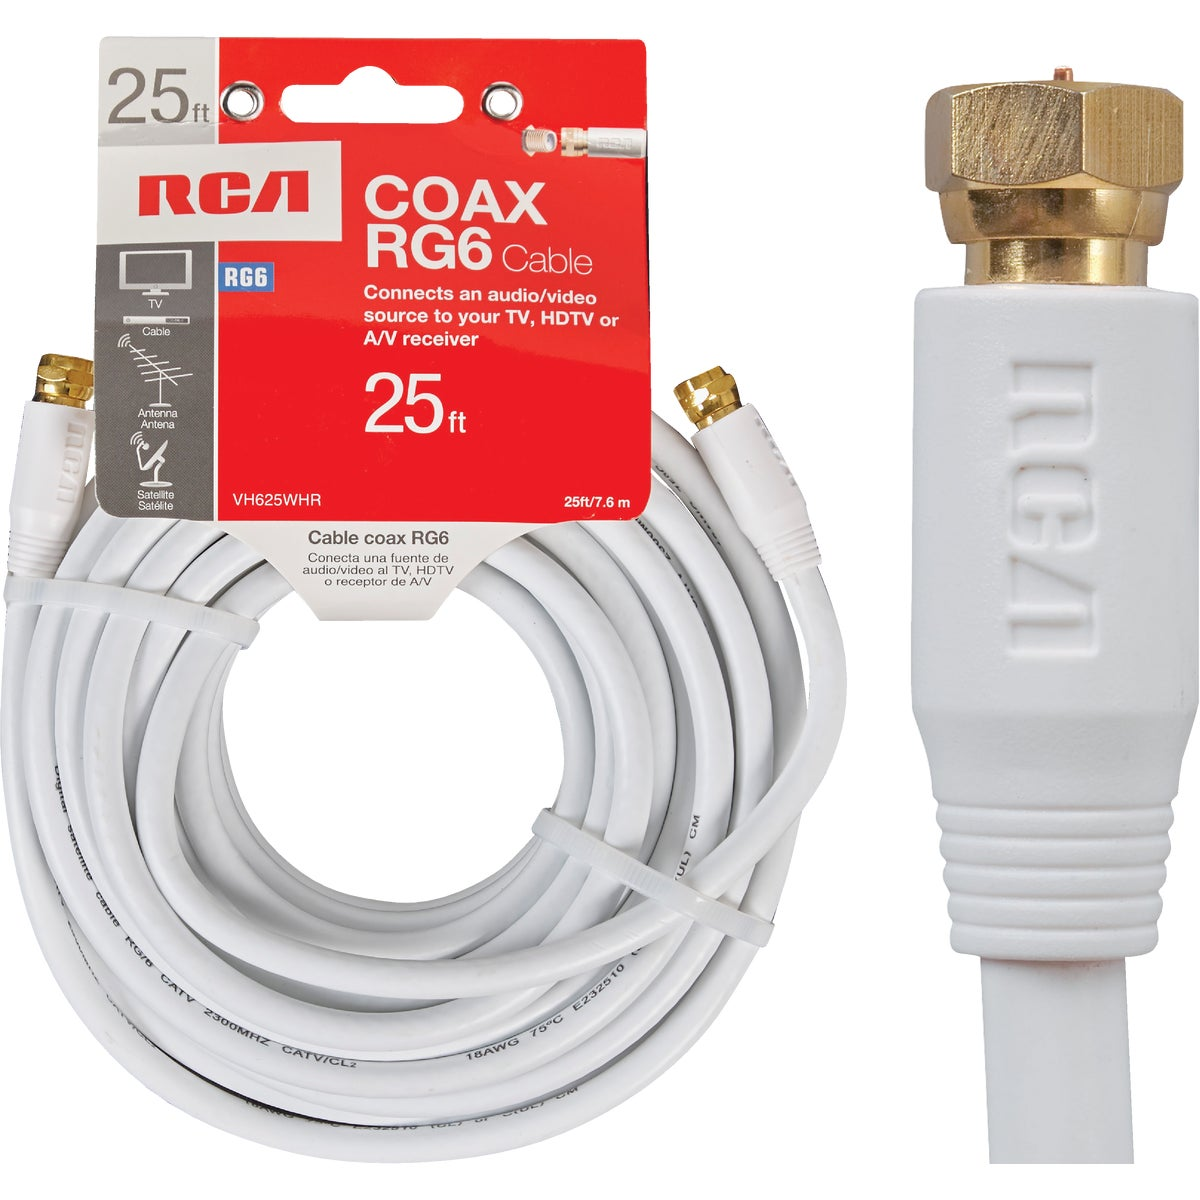 25' RG6 WHT COAX CABLE - VH625WHR by Audiovox Accessories